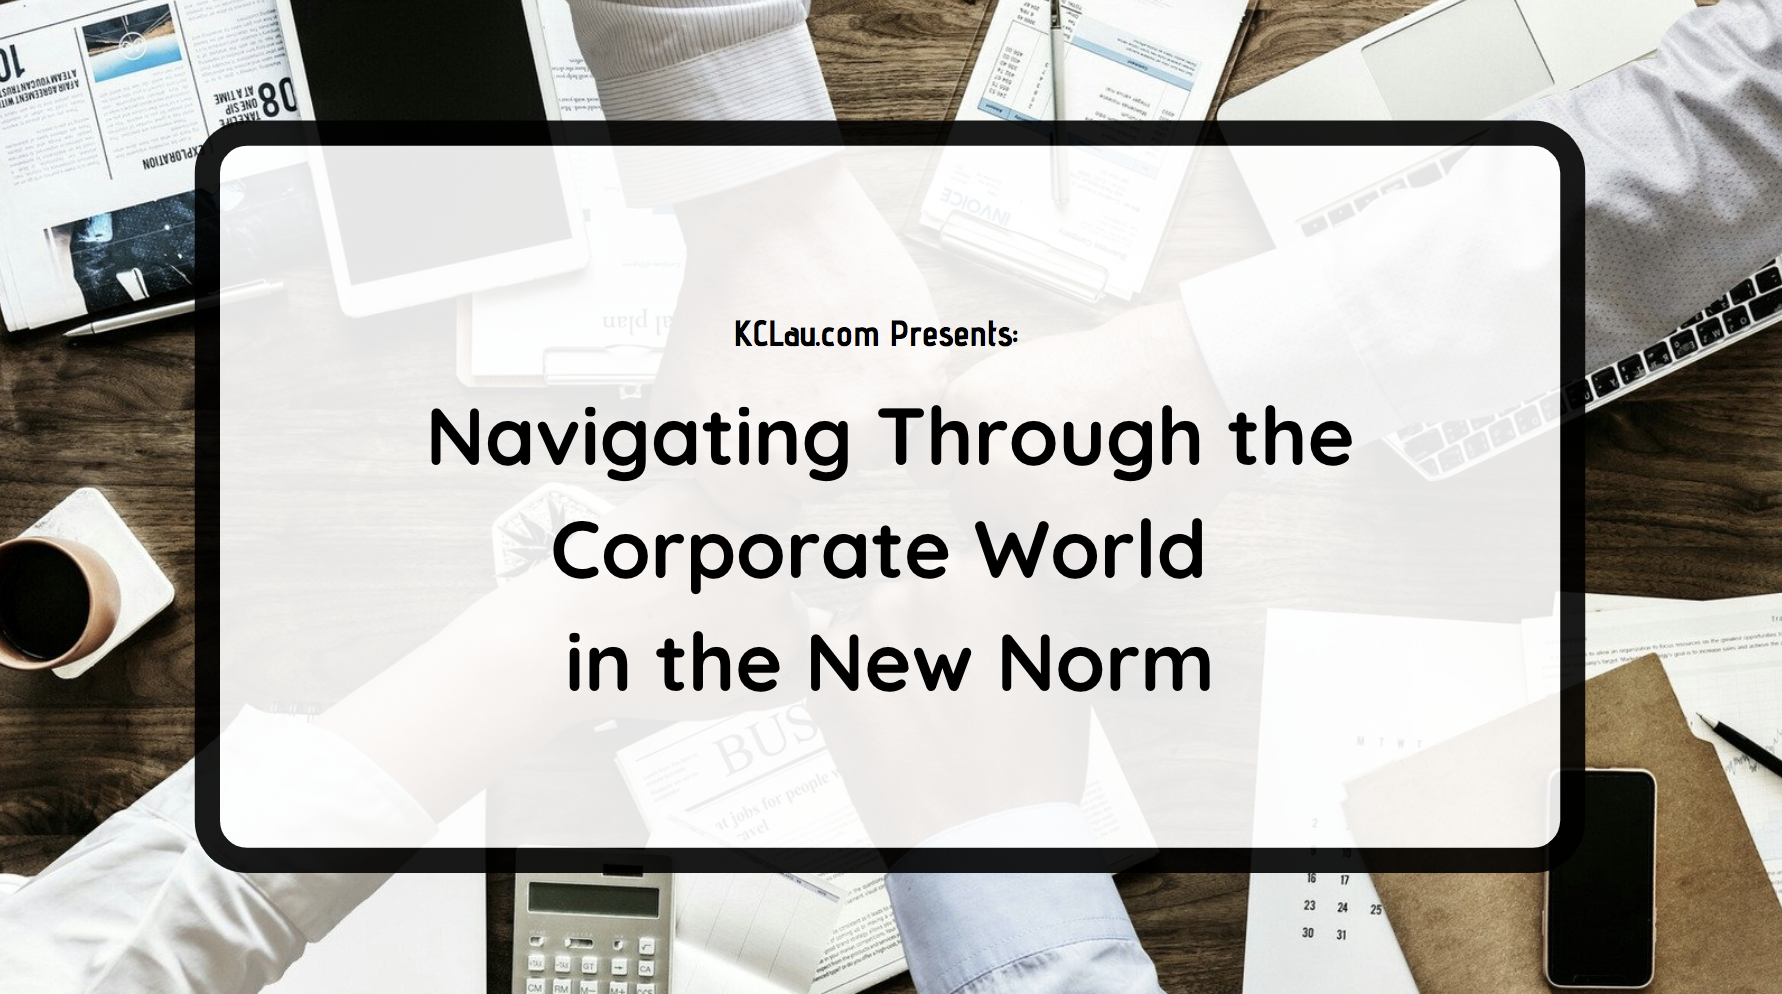 Navigating Through the Corporate World in the New Norm